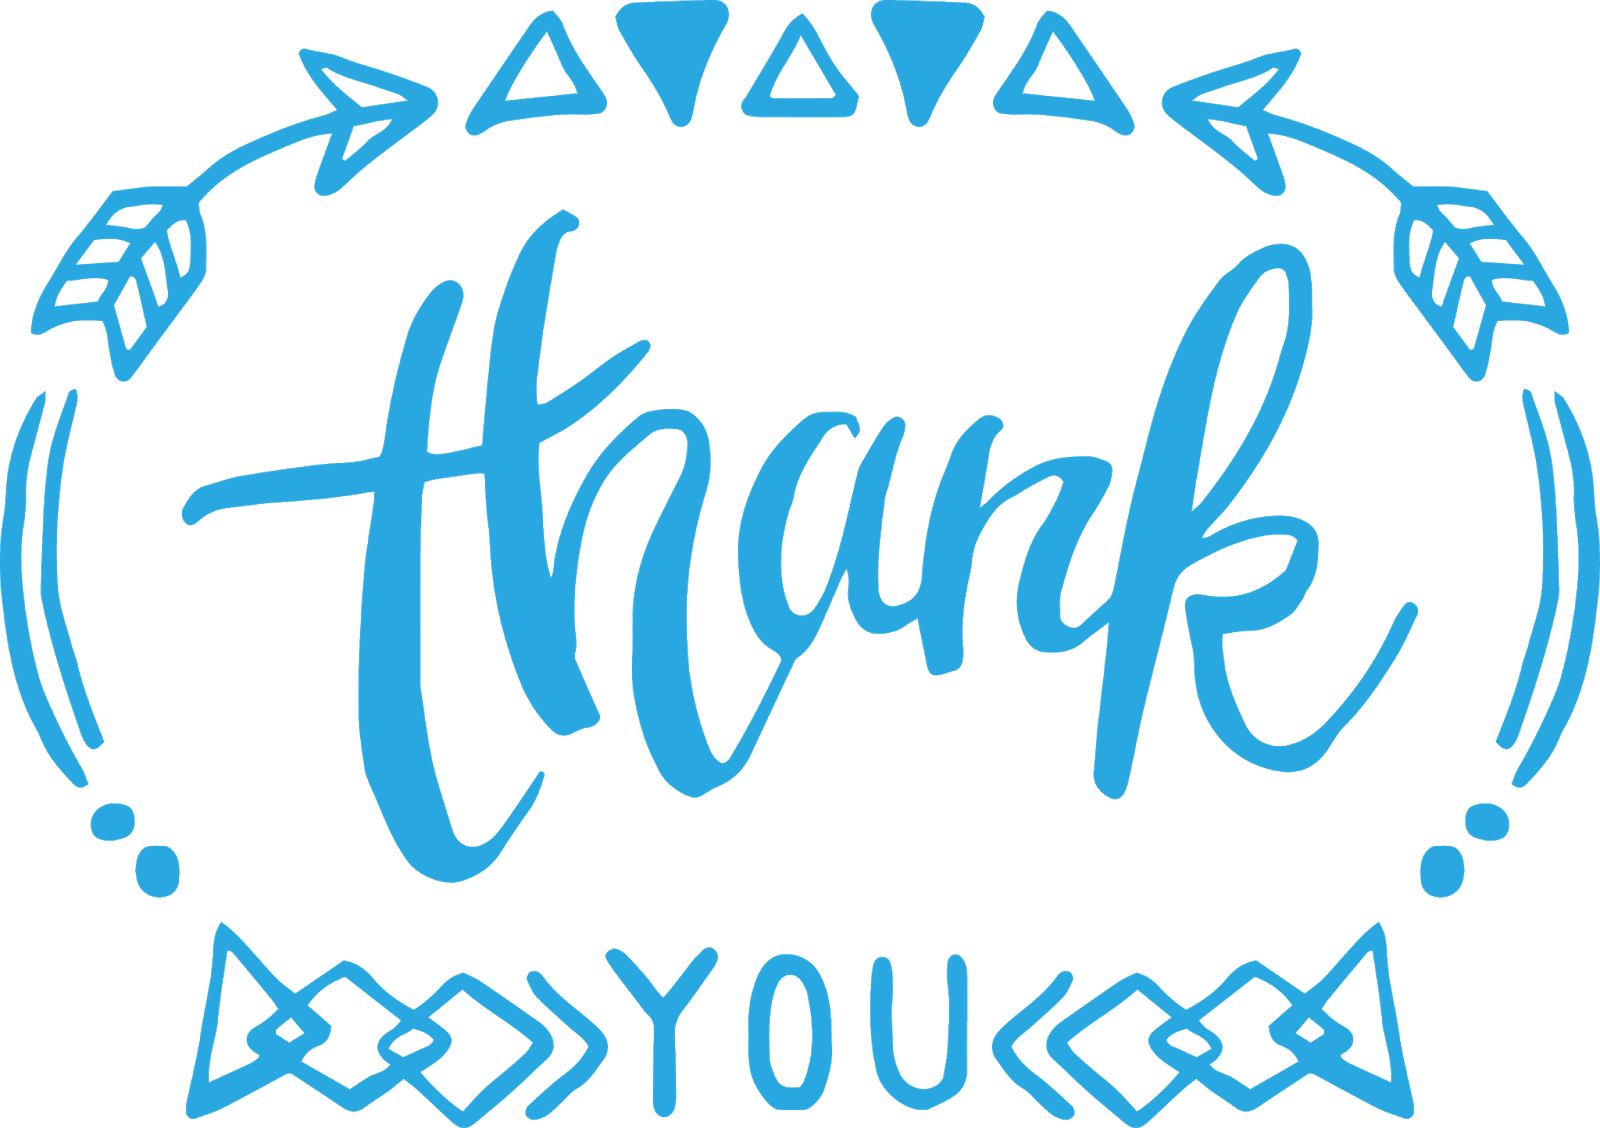 Thank you banner clipart jpg black and white download Thank you banner - Thank you PNG Image & Clipart - PNG Sector jpg black and white download